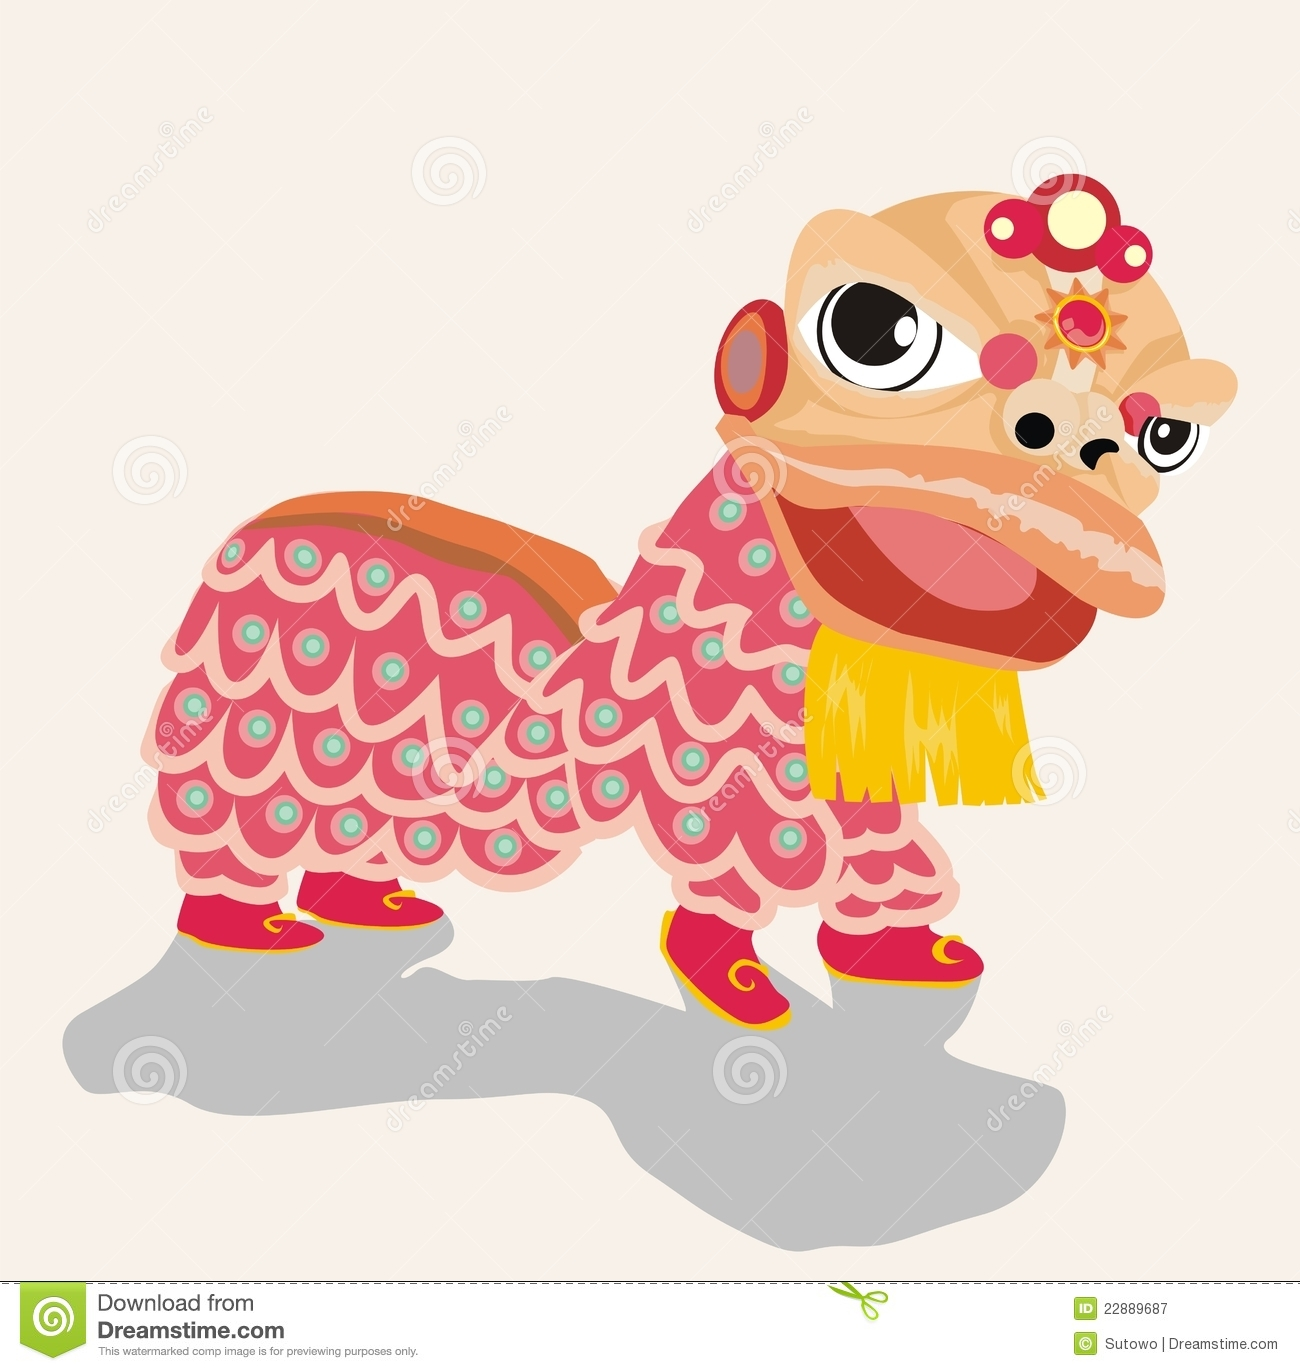 Lion Dance Royalty Free Stock Photography - Image: 22889687